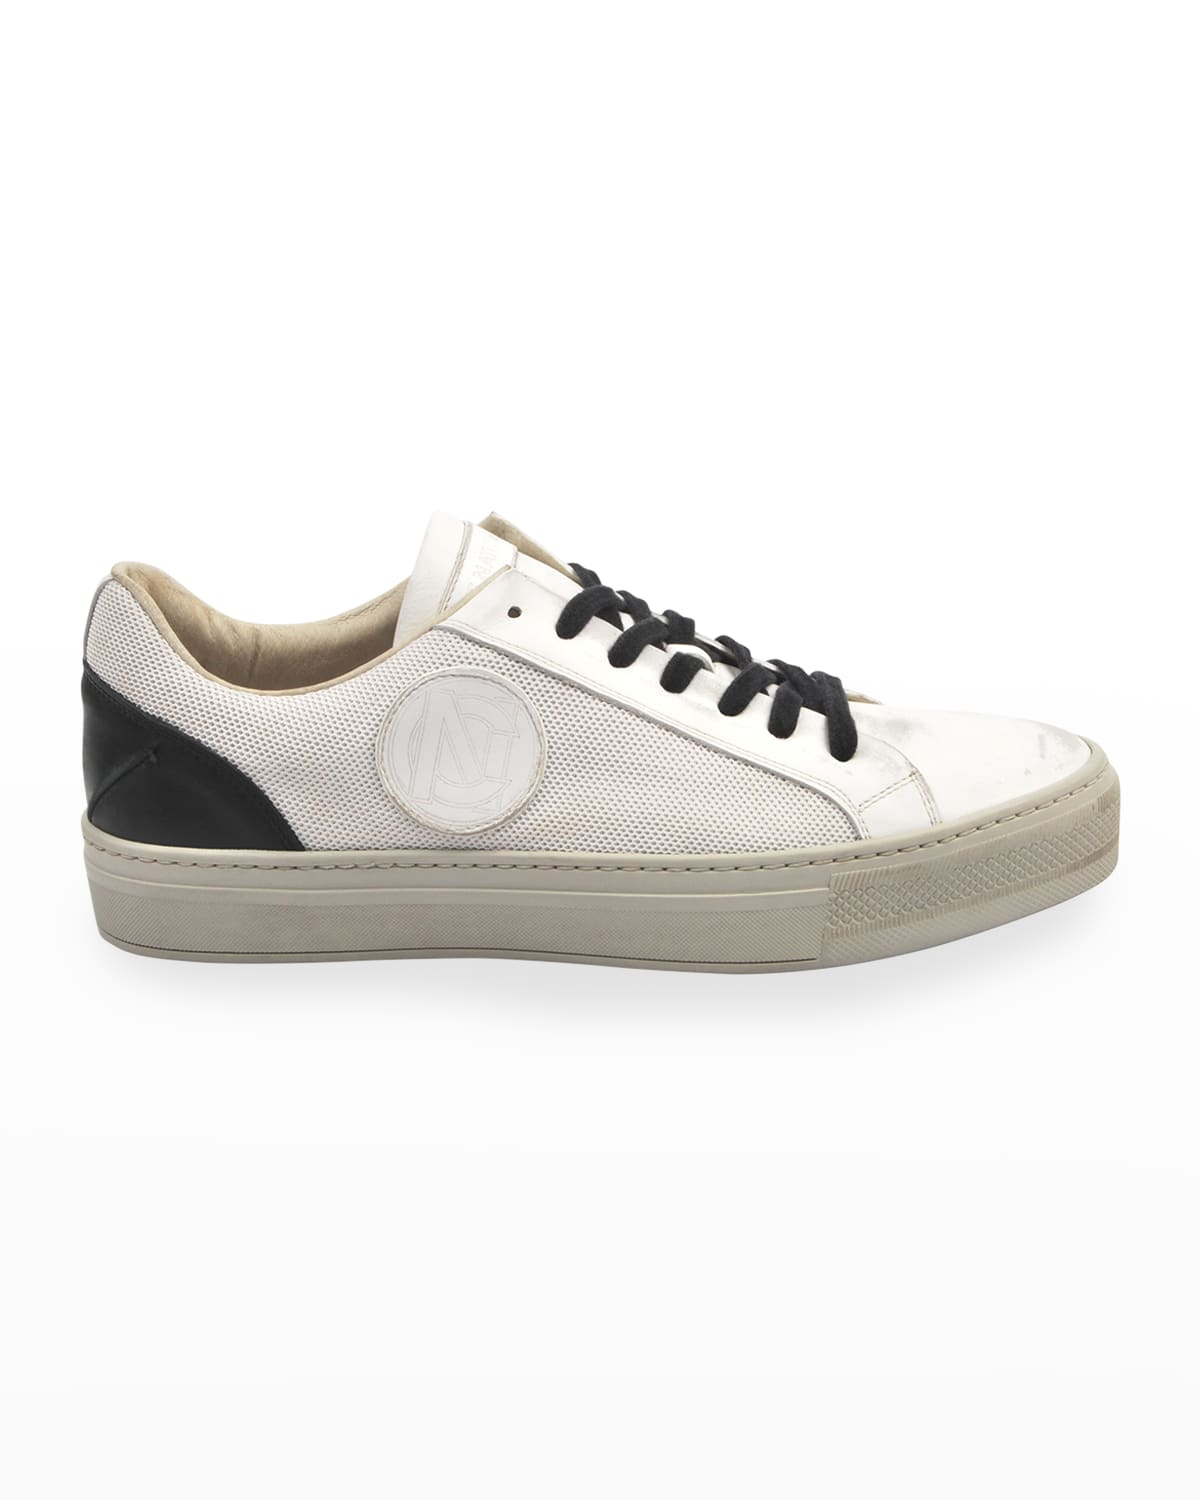 Men's Mesh %26 Two-Tone Leather Logo Sneakers